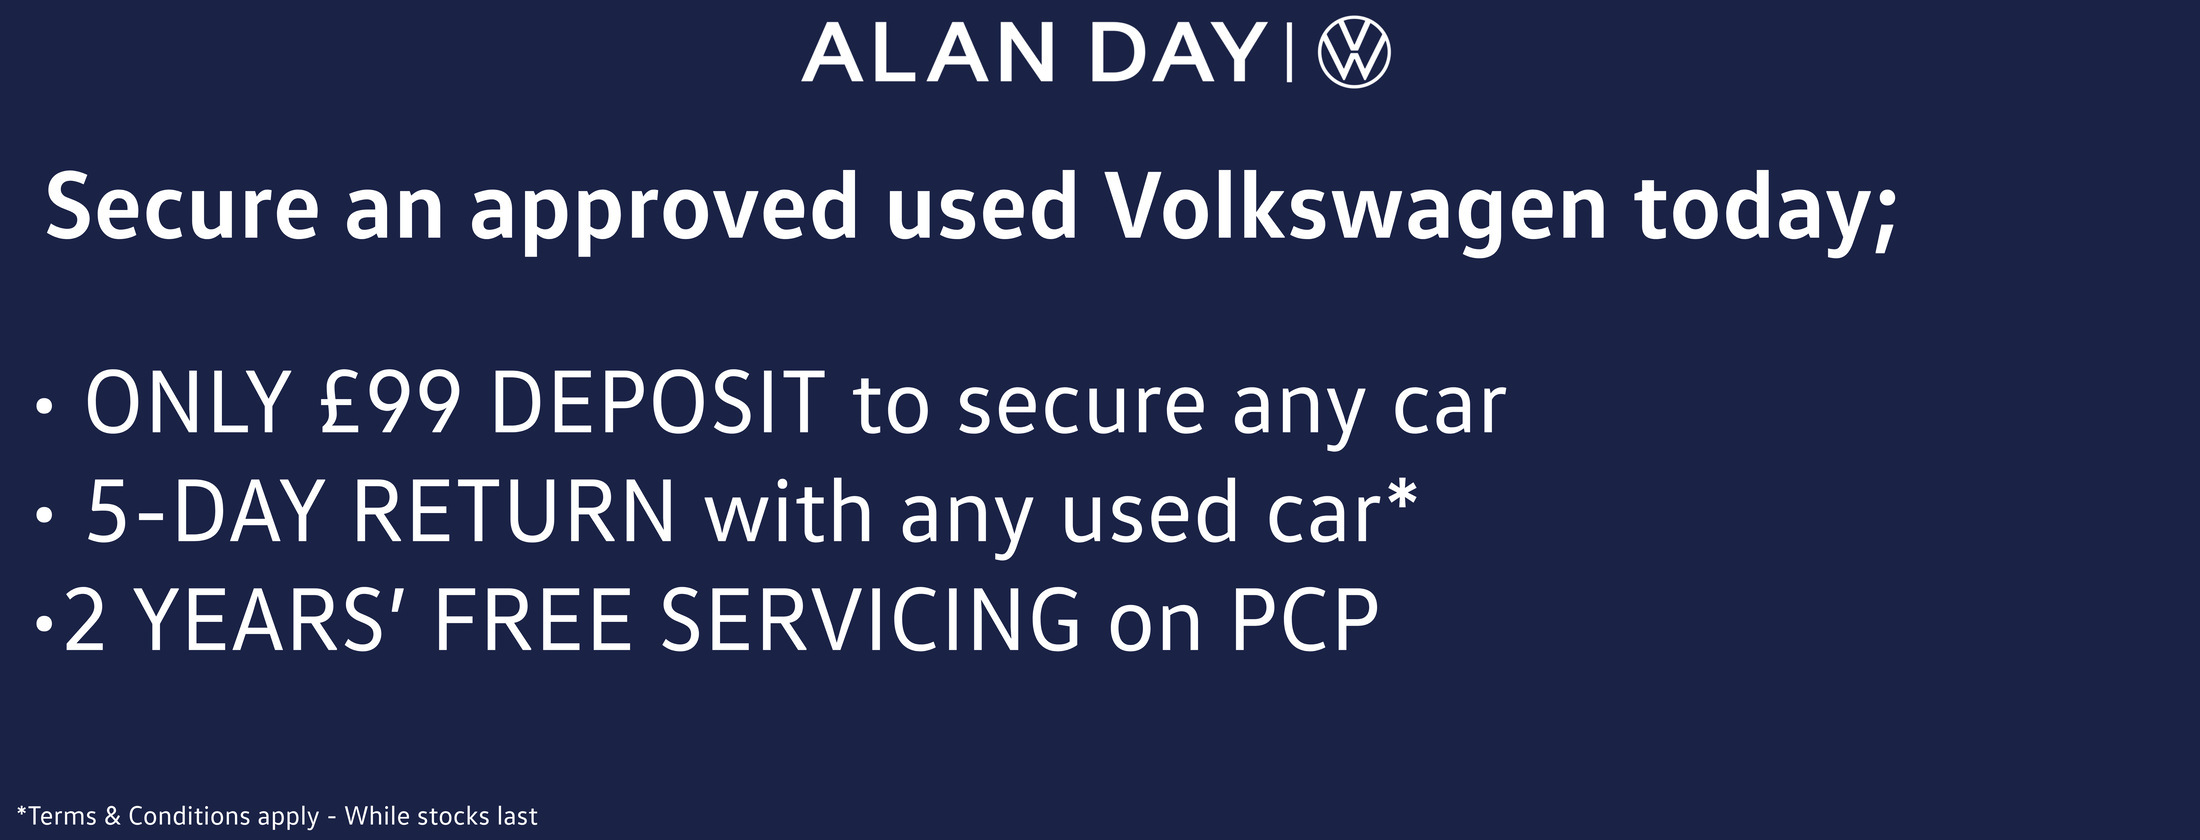 Secure a Used VW Today